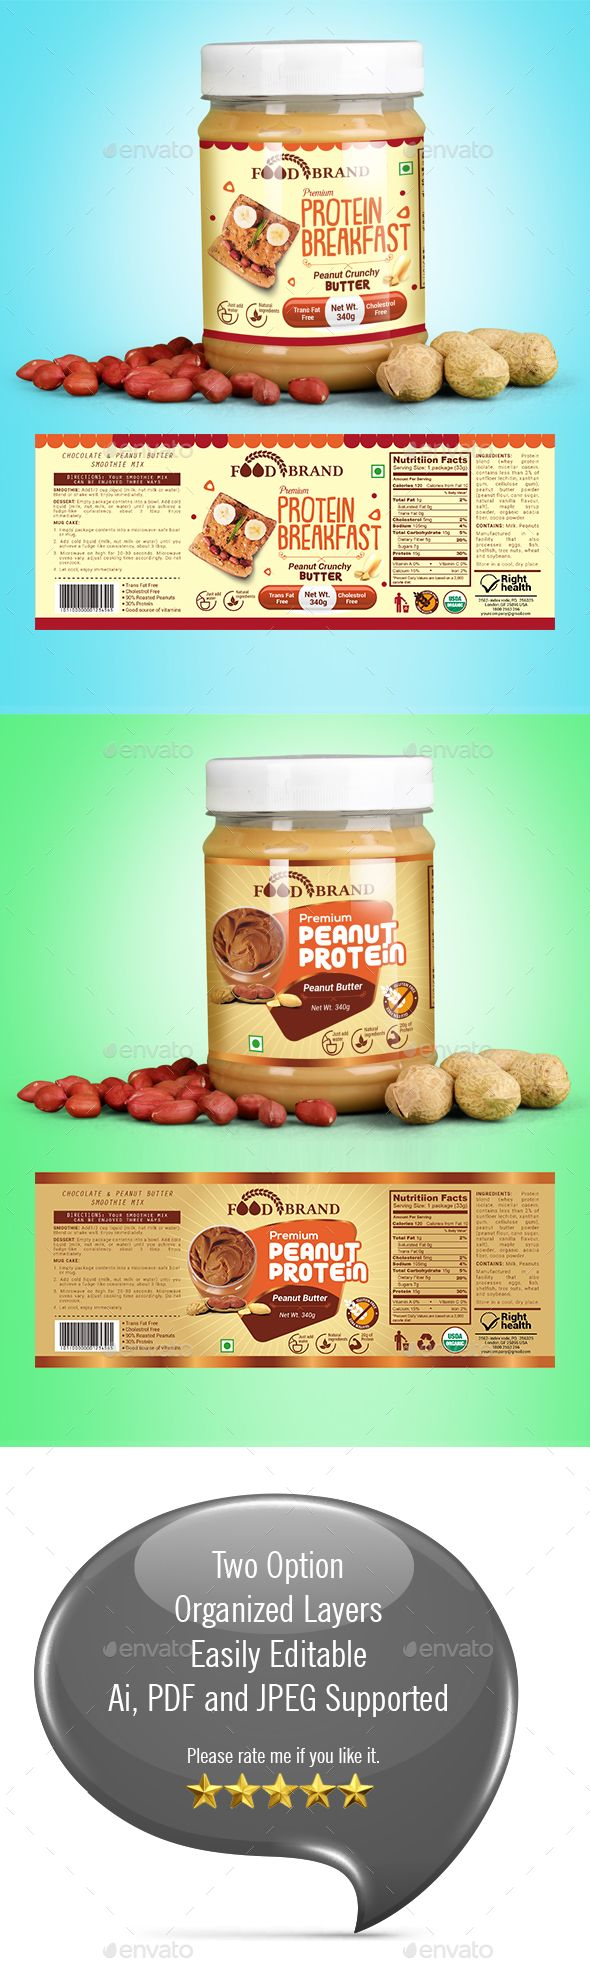 Peanut Butter Packaging Template | Print templates, Template and Ai ...